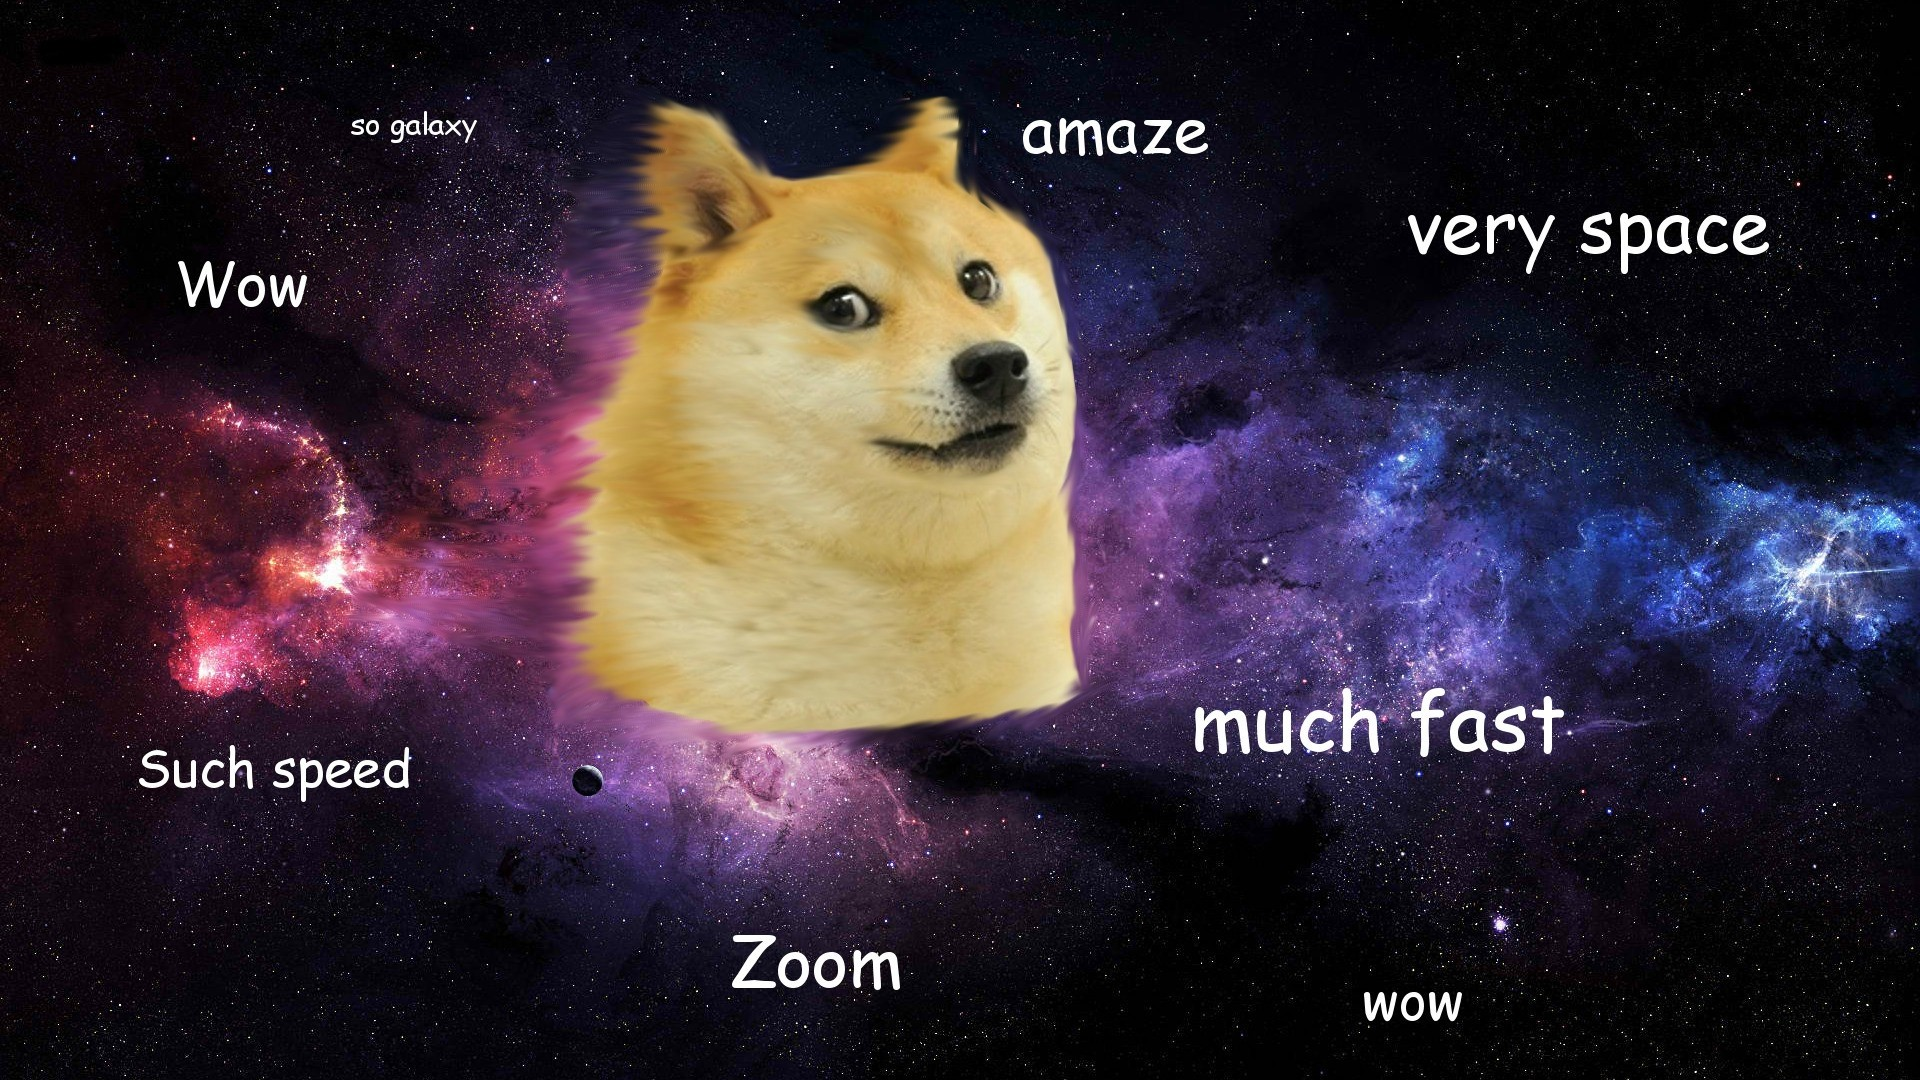 Res: 1920x1080, Doge in SPACE, Wow, so galaxy, much fast